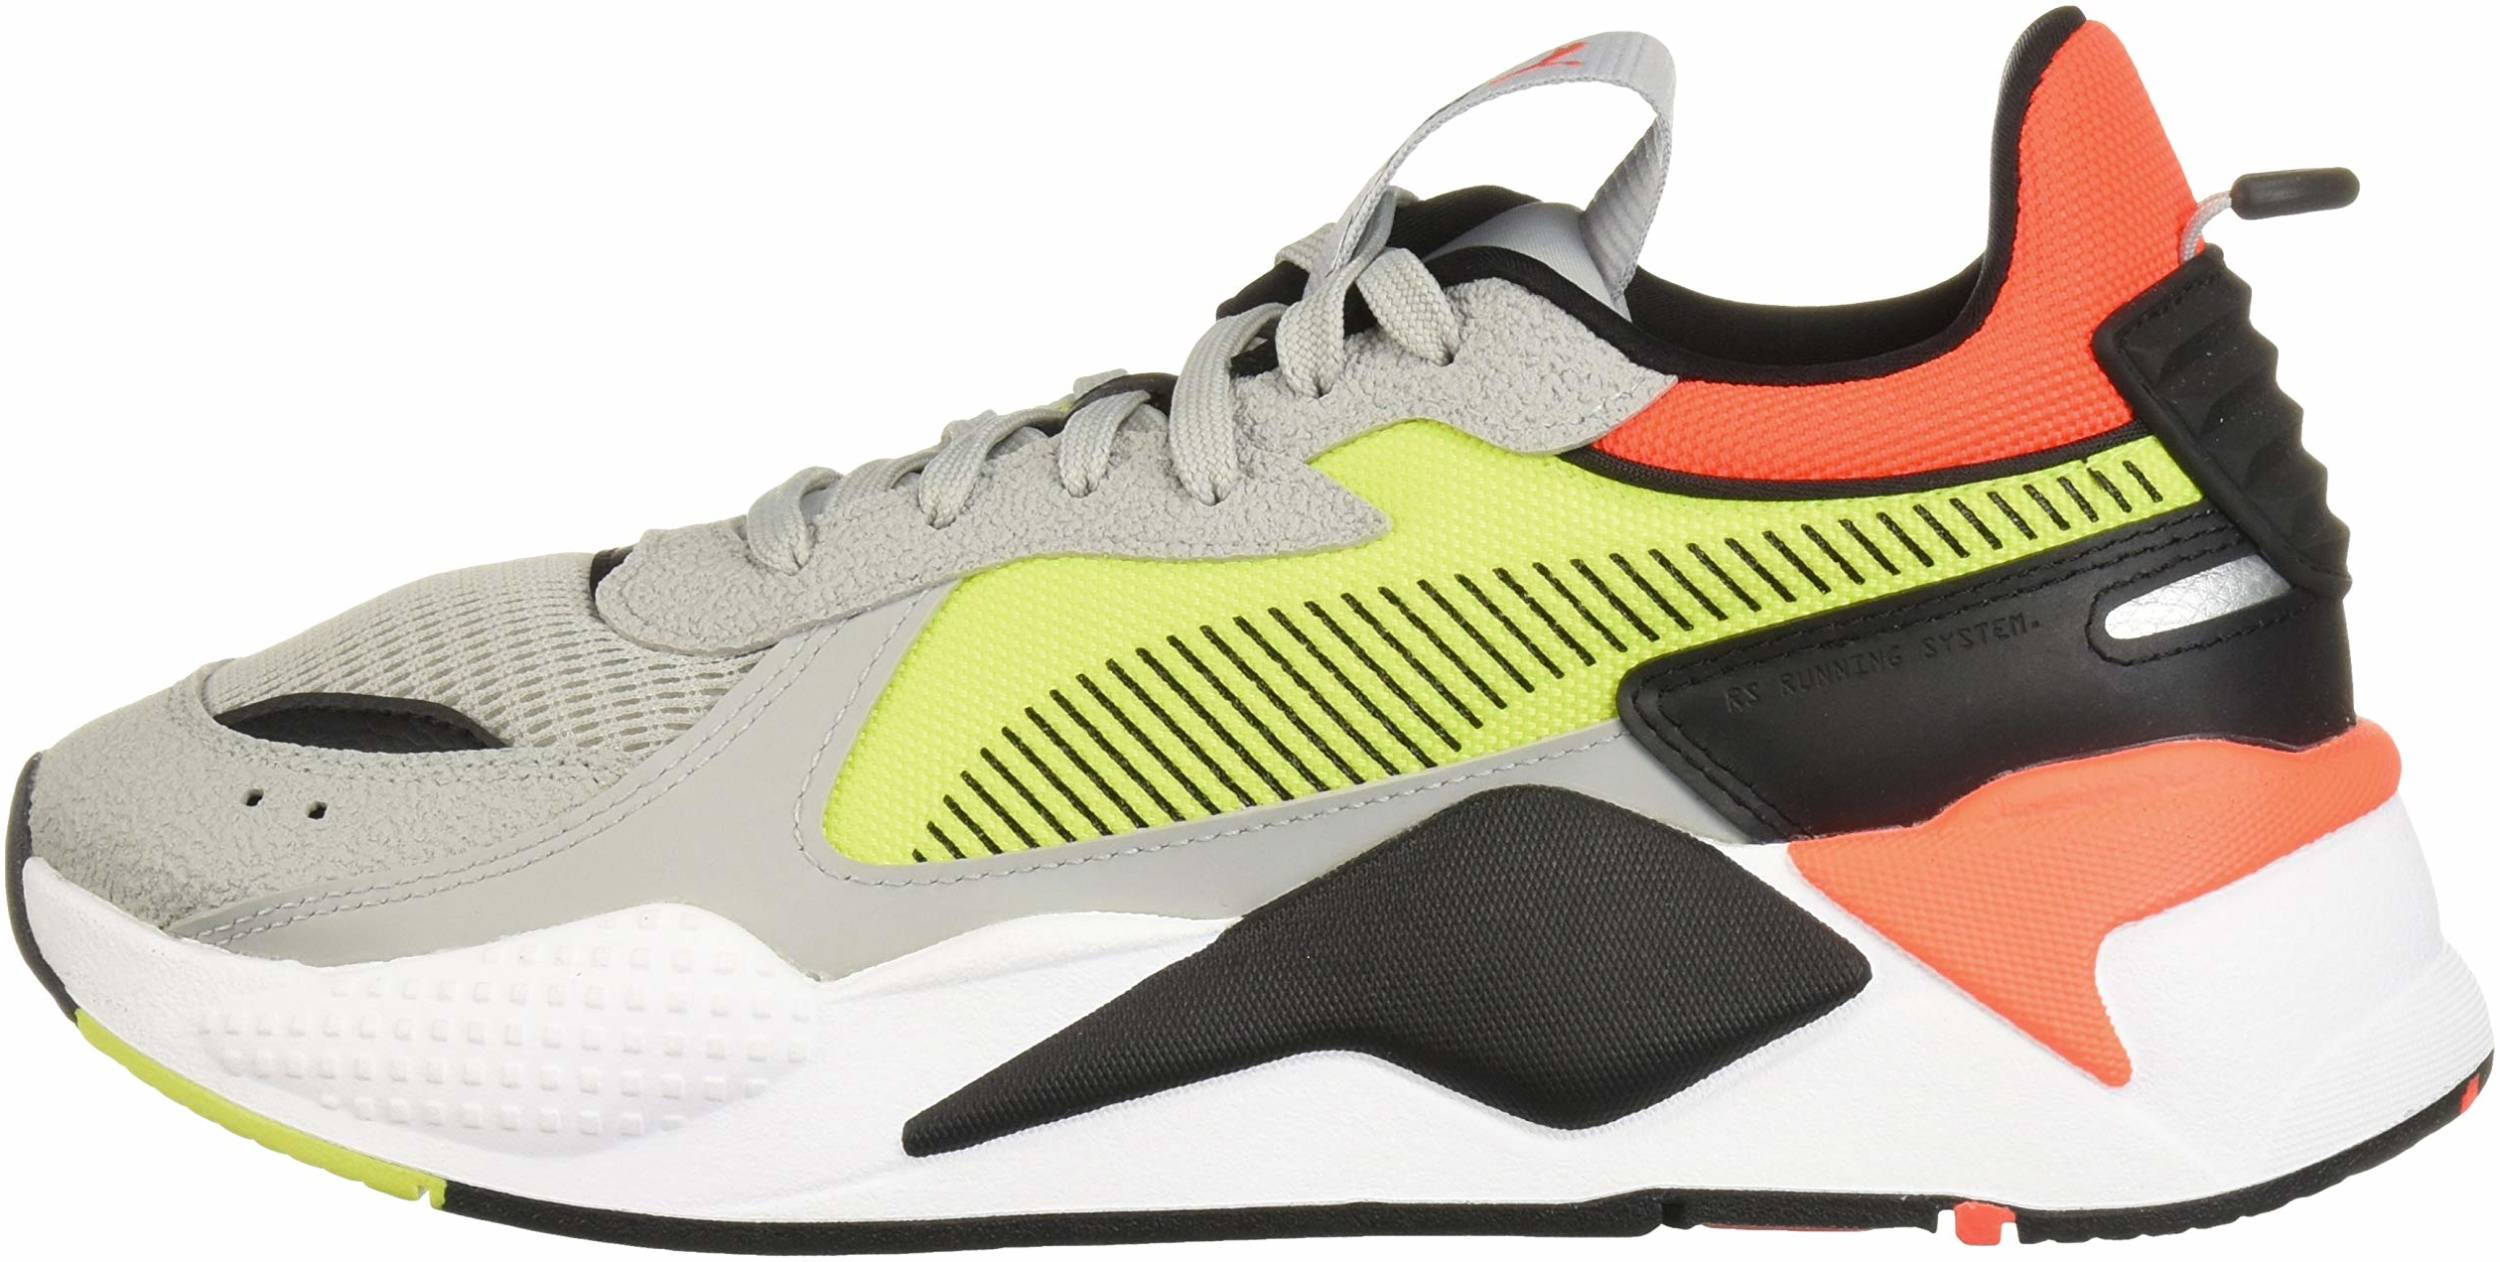 Puma RS-X sneakers in white (only $36) | RunRepeat